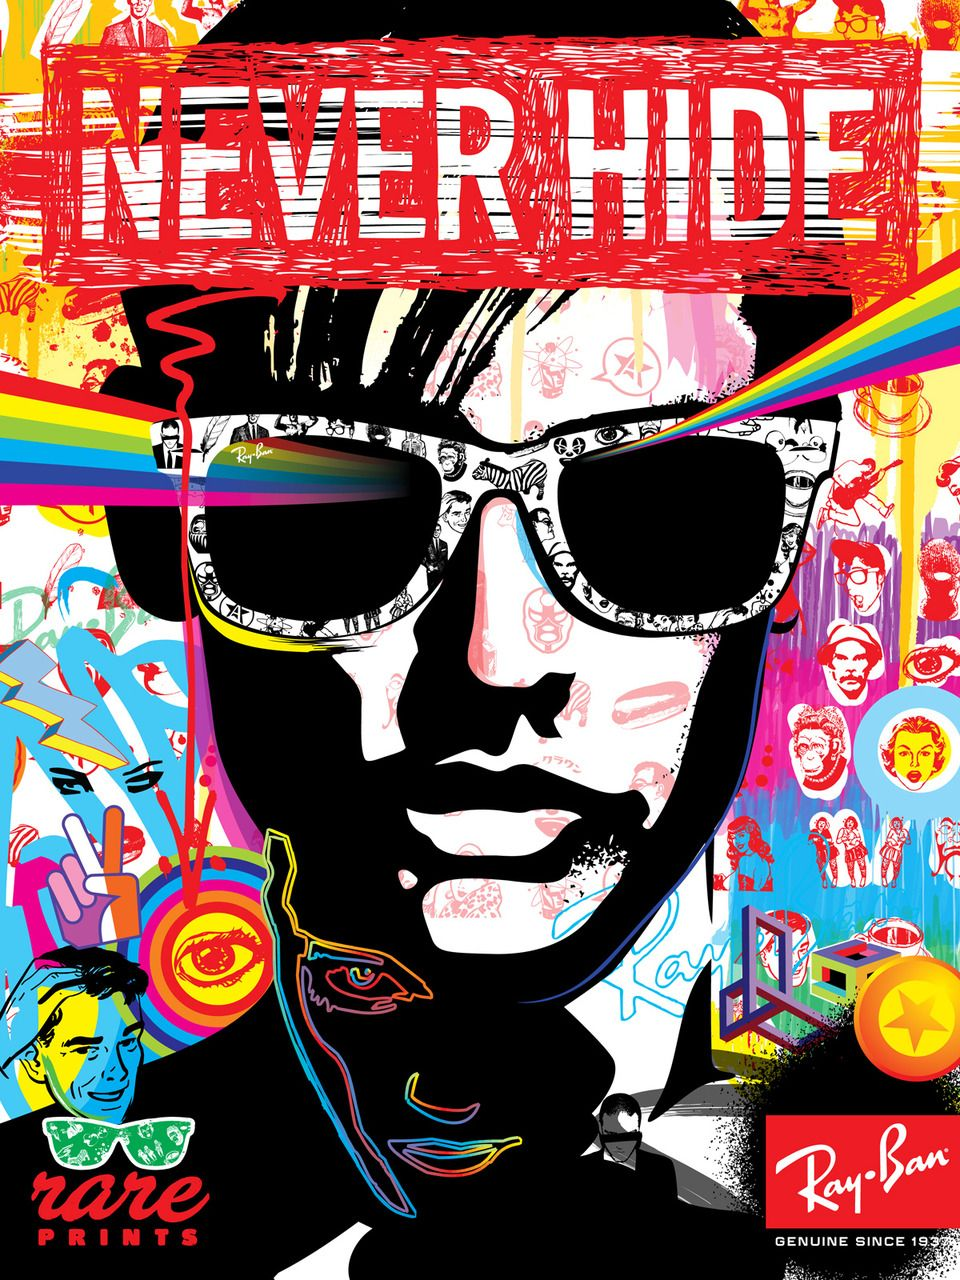 164ab8ae91f1 After working at a sunglass store we used these Ray Ban posters to bring in  customers through Ray Bans visually appeal and catchy slogan